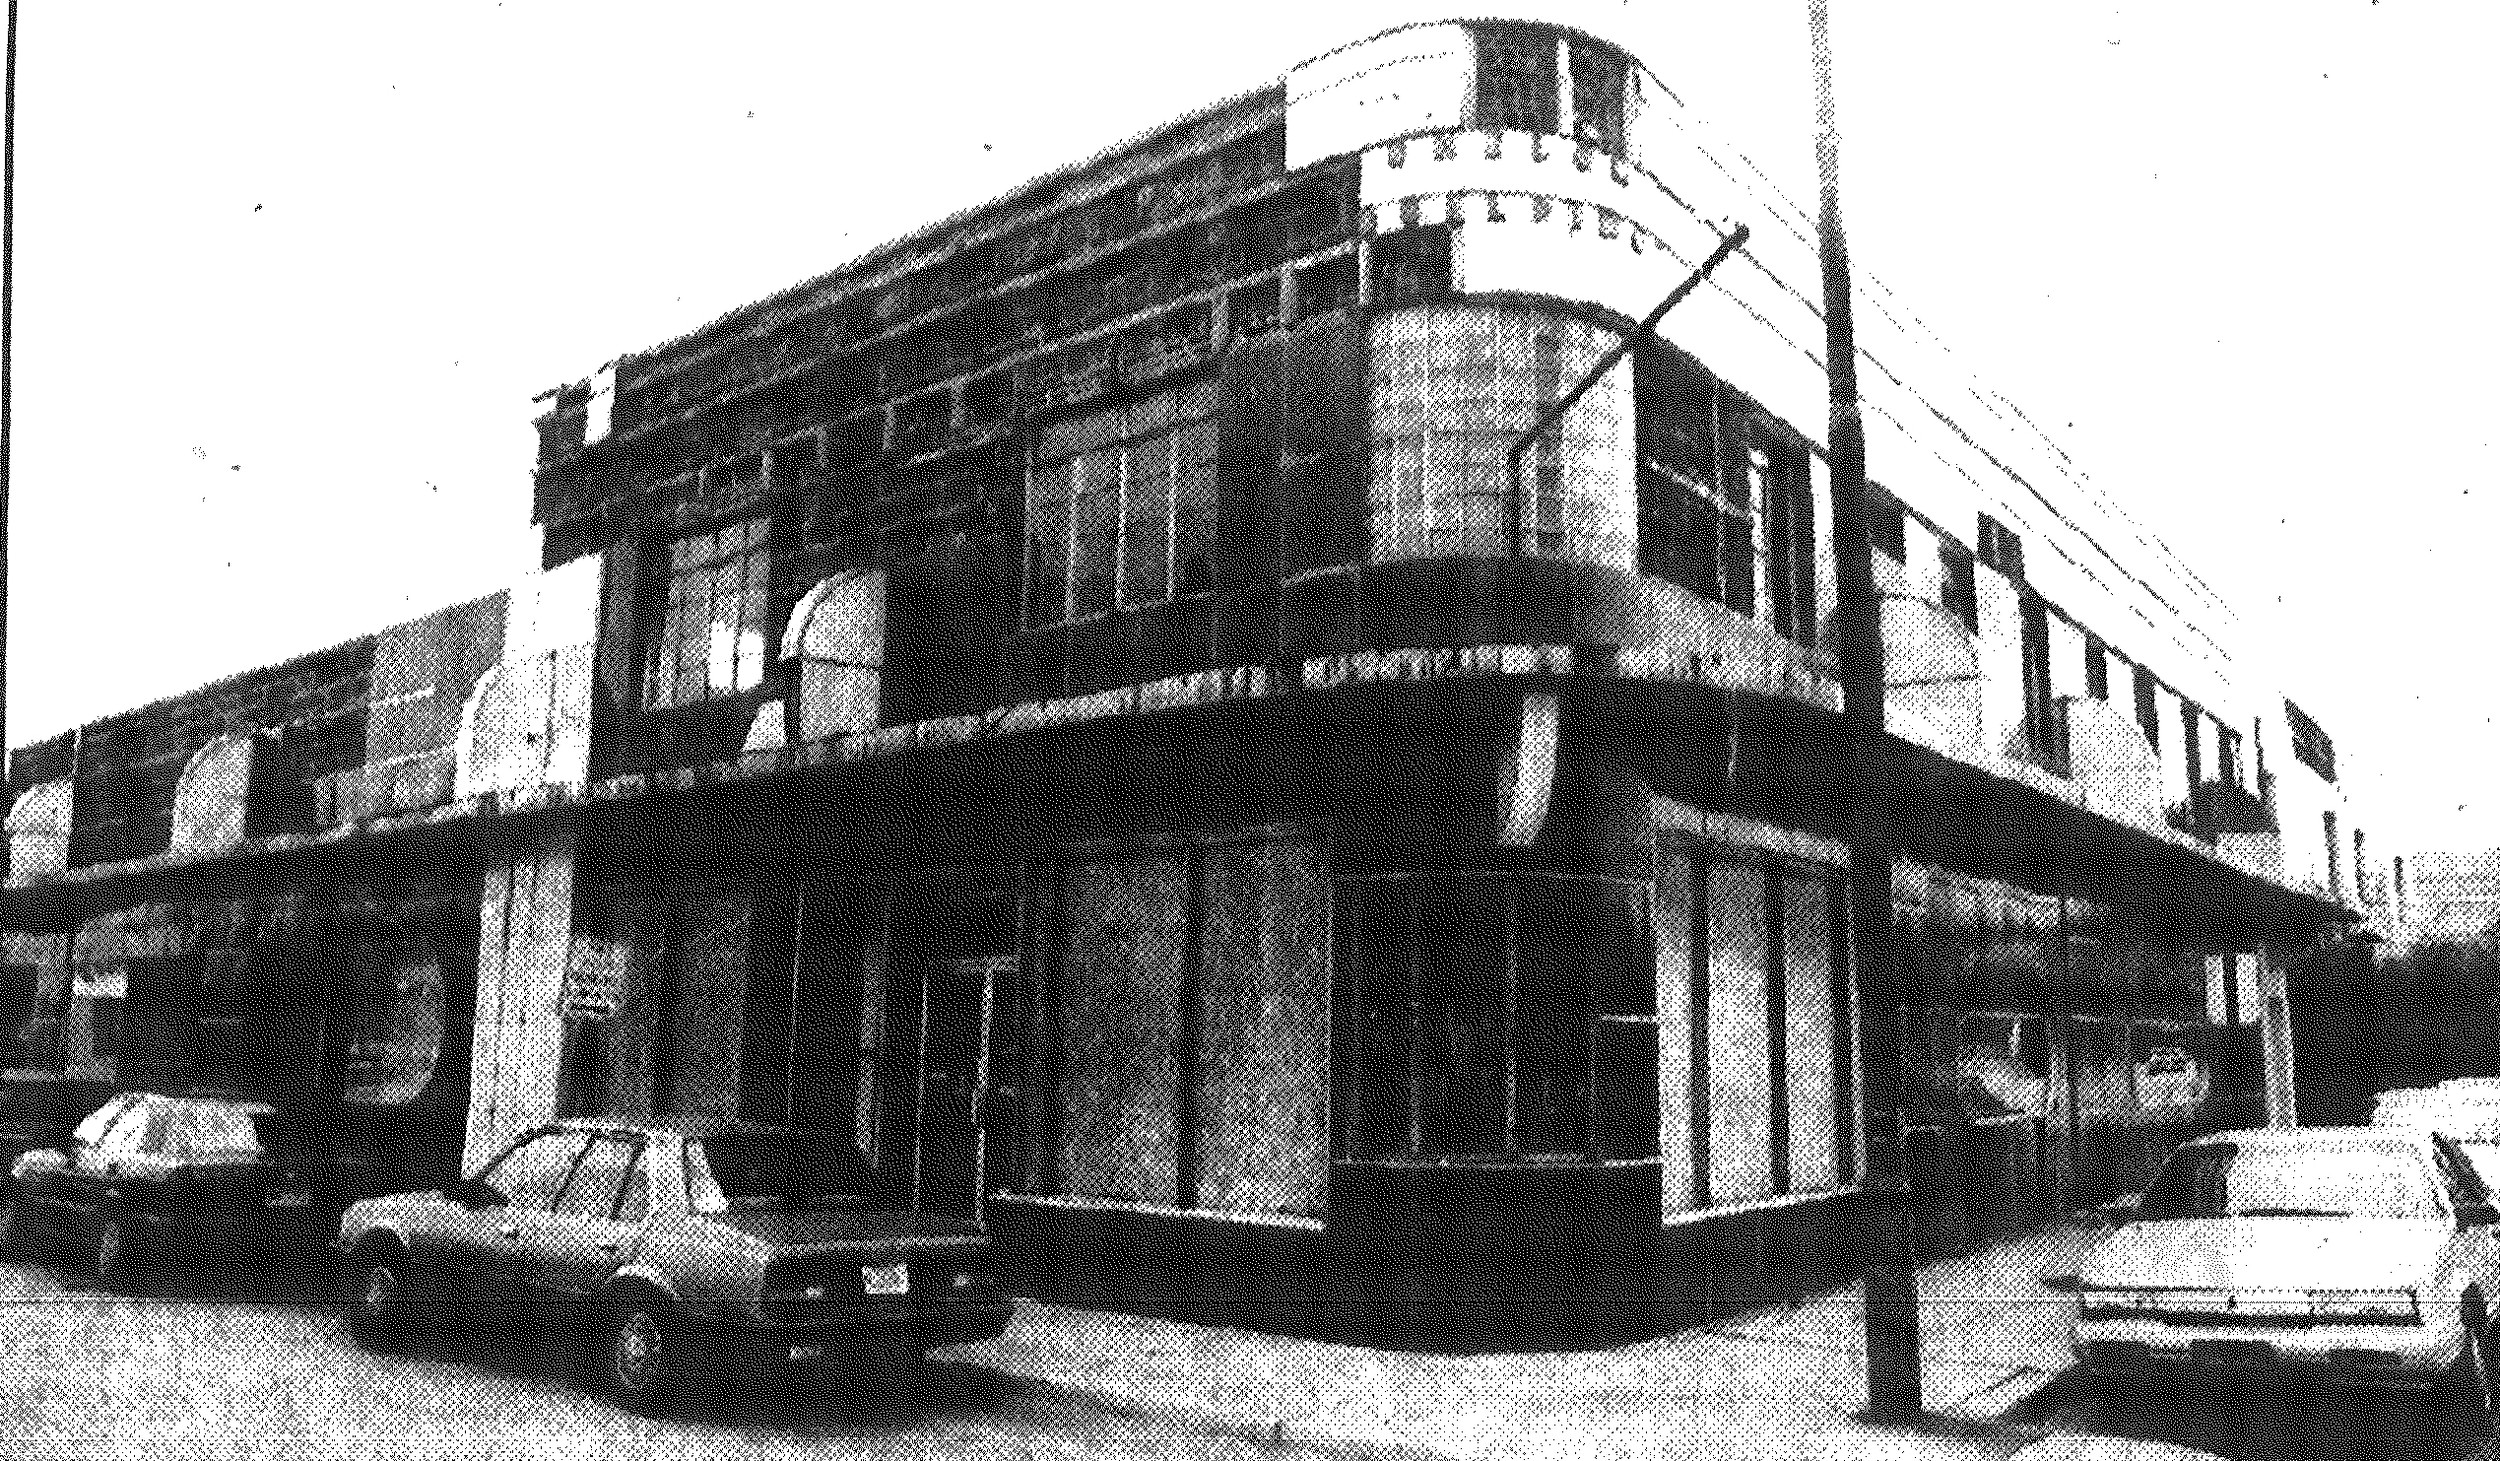 1992 -- The Shelor Building, distinguished by its art deco architecture, stood for years near the Sumter Laundry and Cleaners on South Sumter Street.